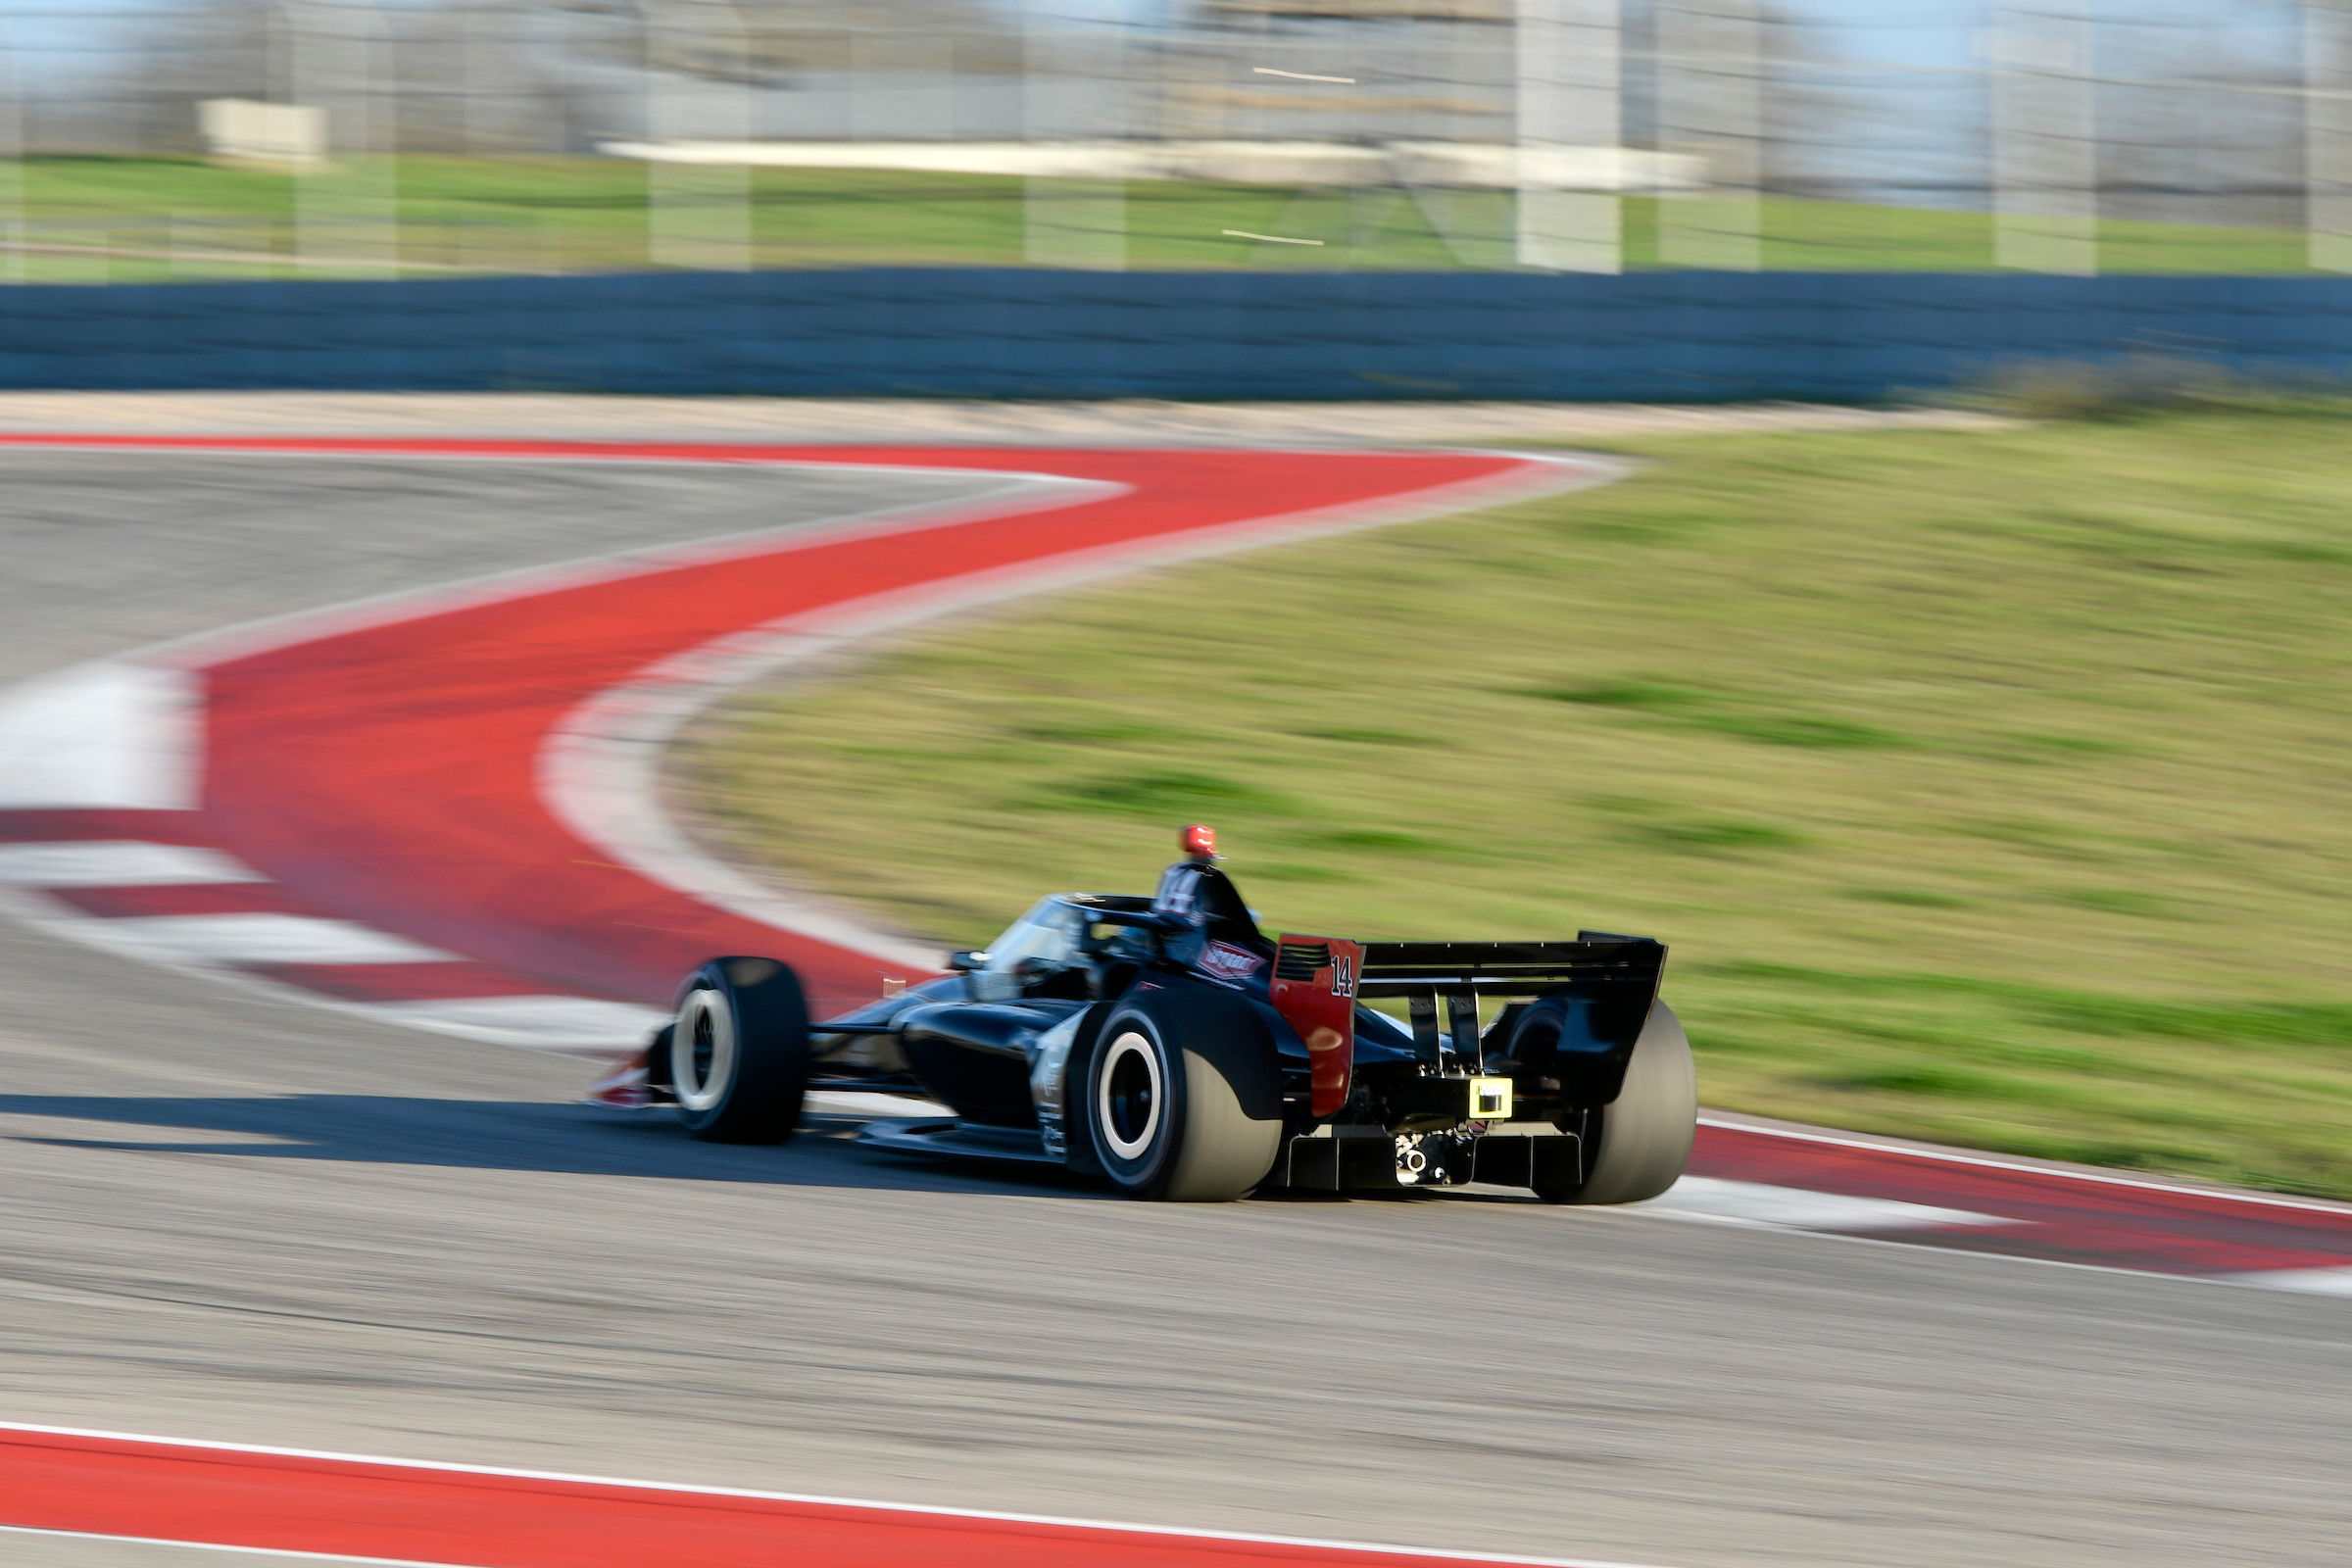 AJ Foyt Racing #14 at COTA